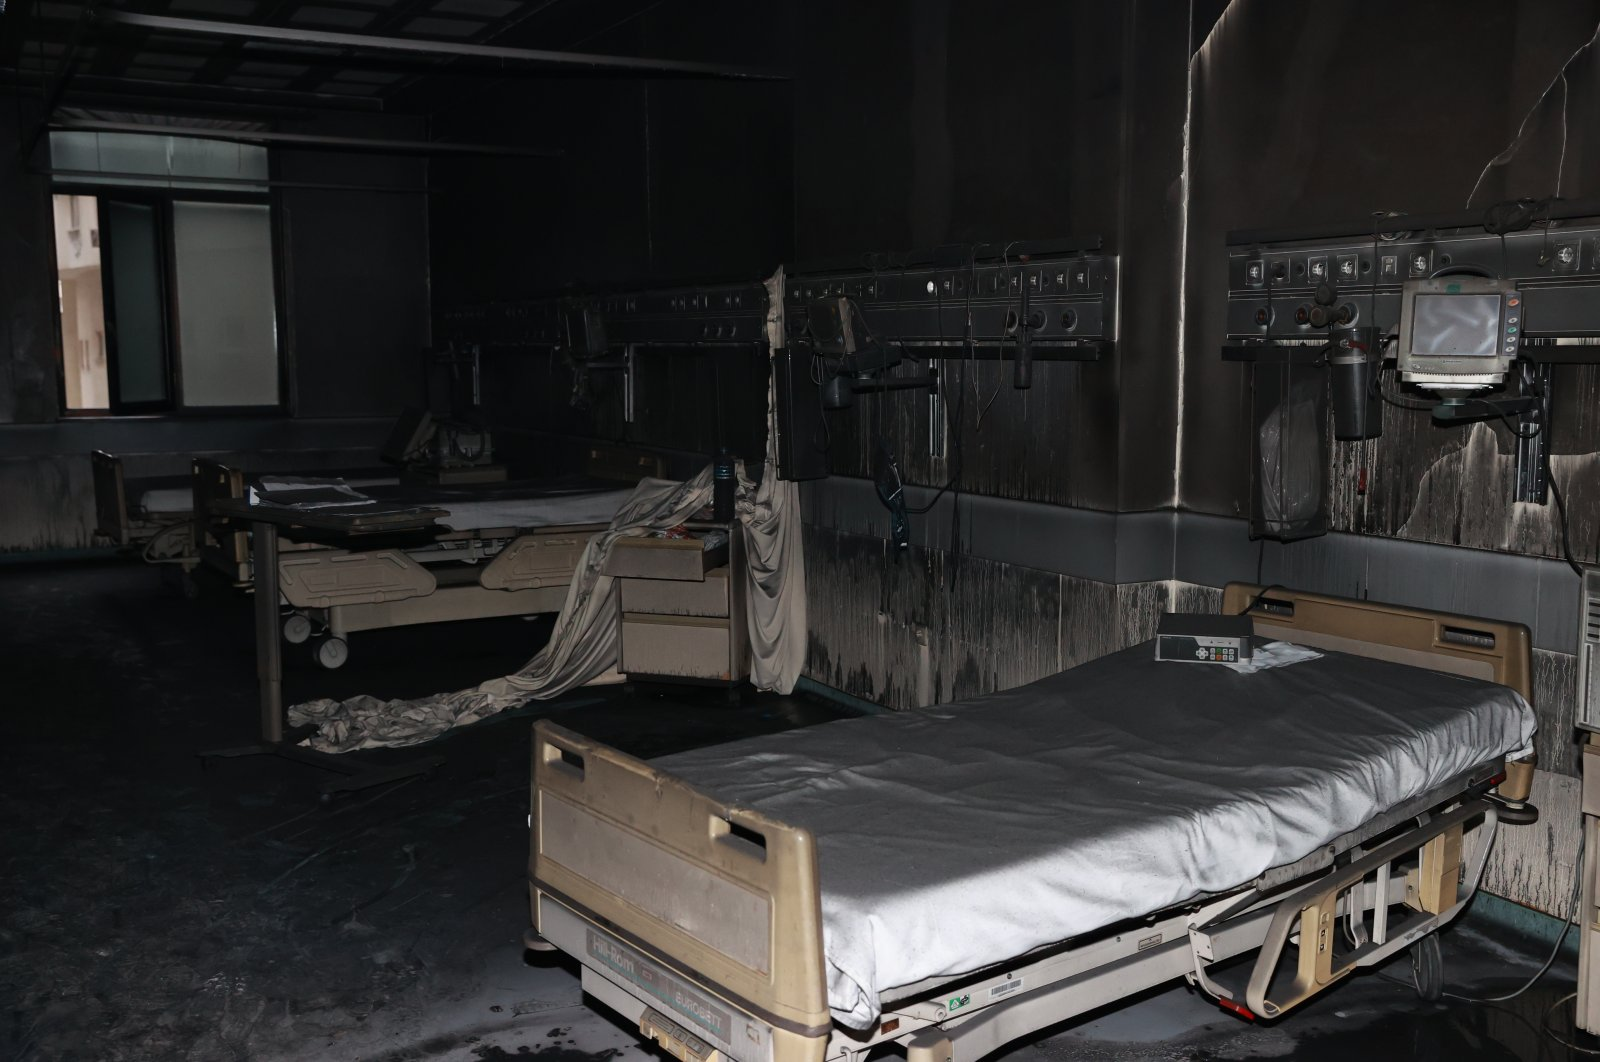 A view of the intensive care unit after the fire in Gaziantep, southern Turkey, Dec. 19, 2020. (AA PHOTO)